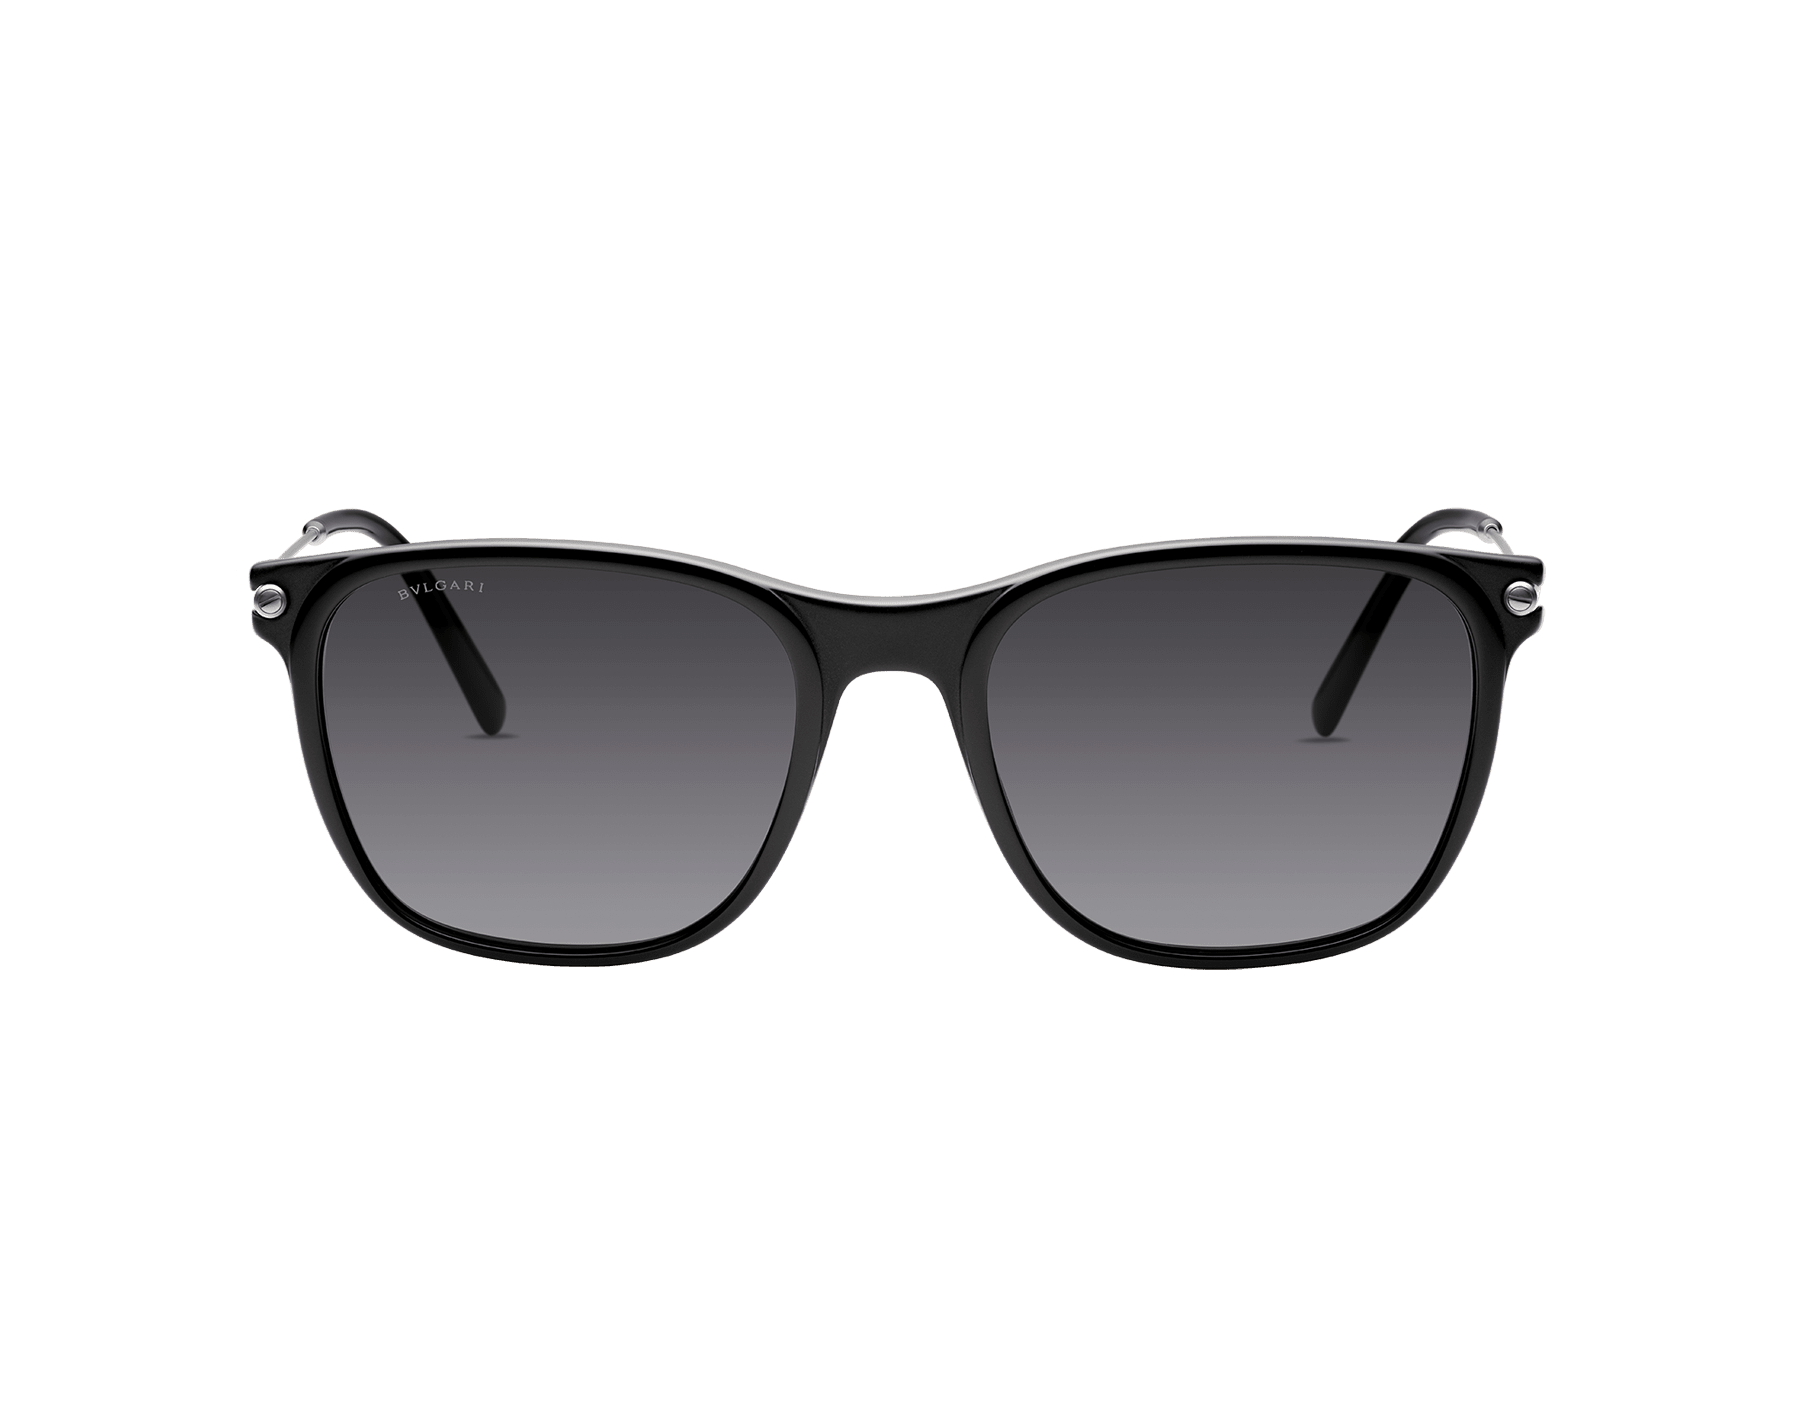 Diagono rectangular acetate sunglasses. 903600 image 2